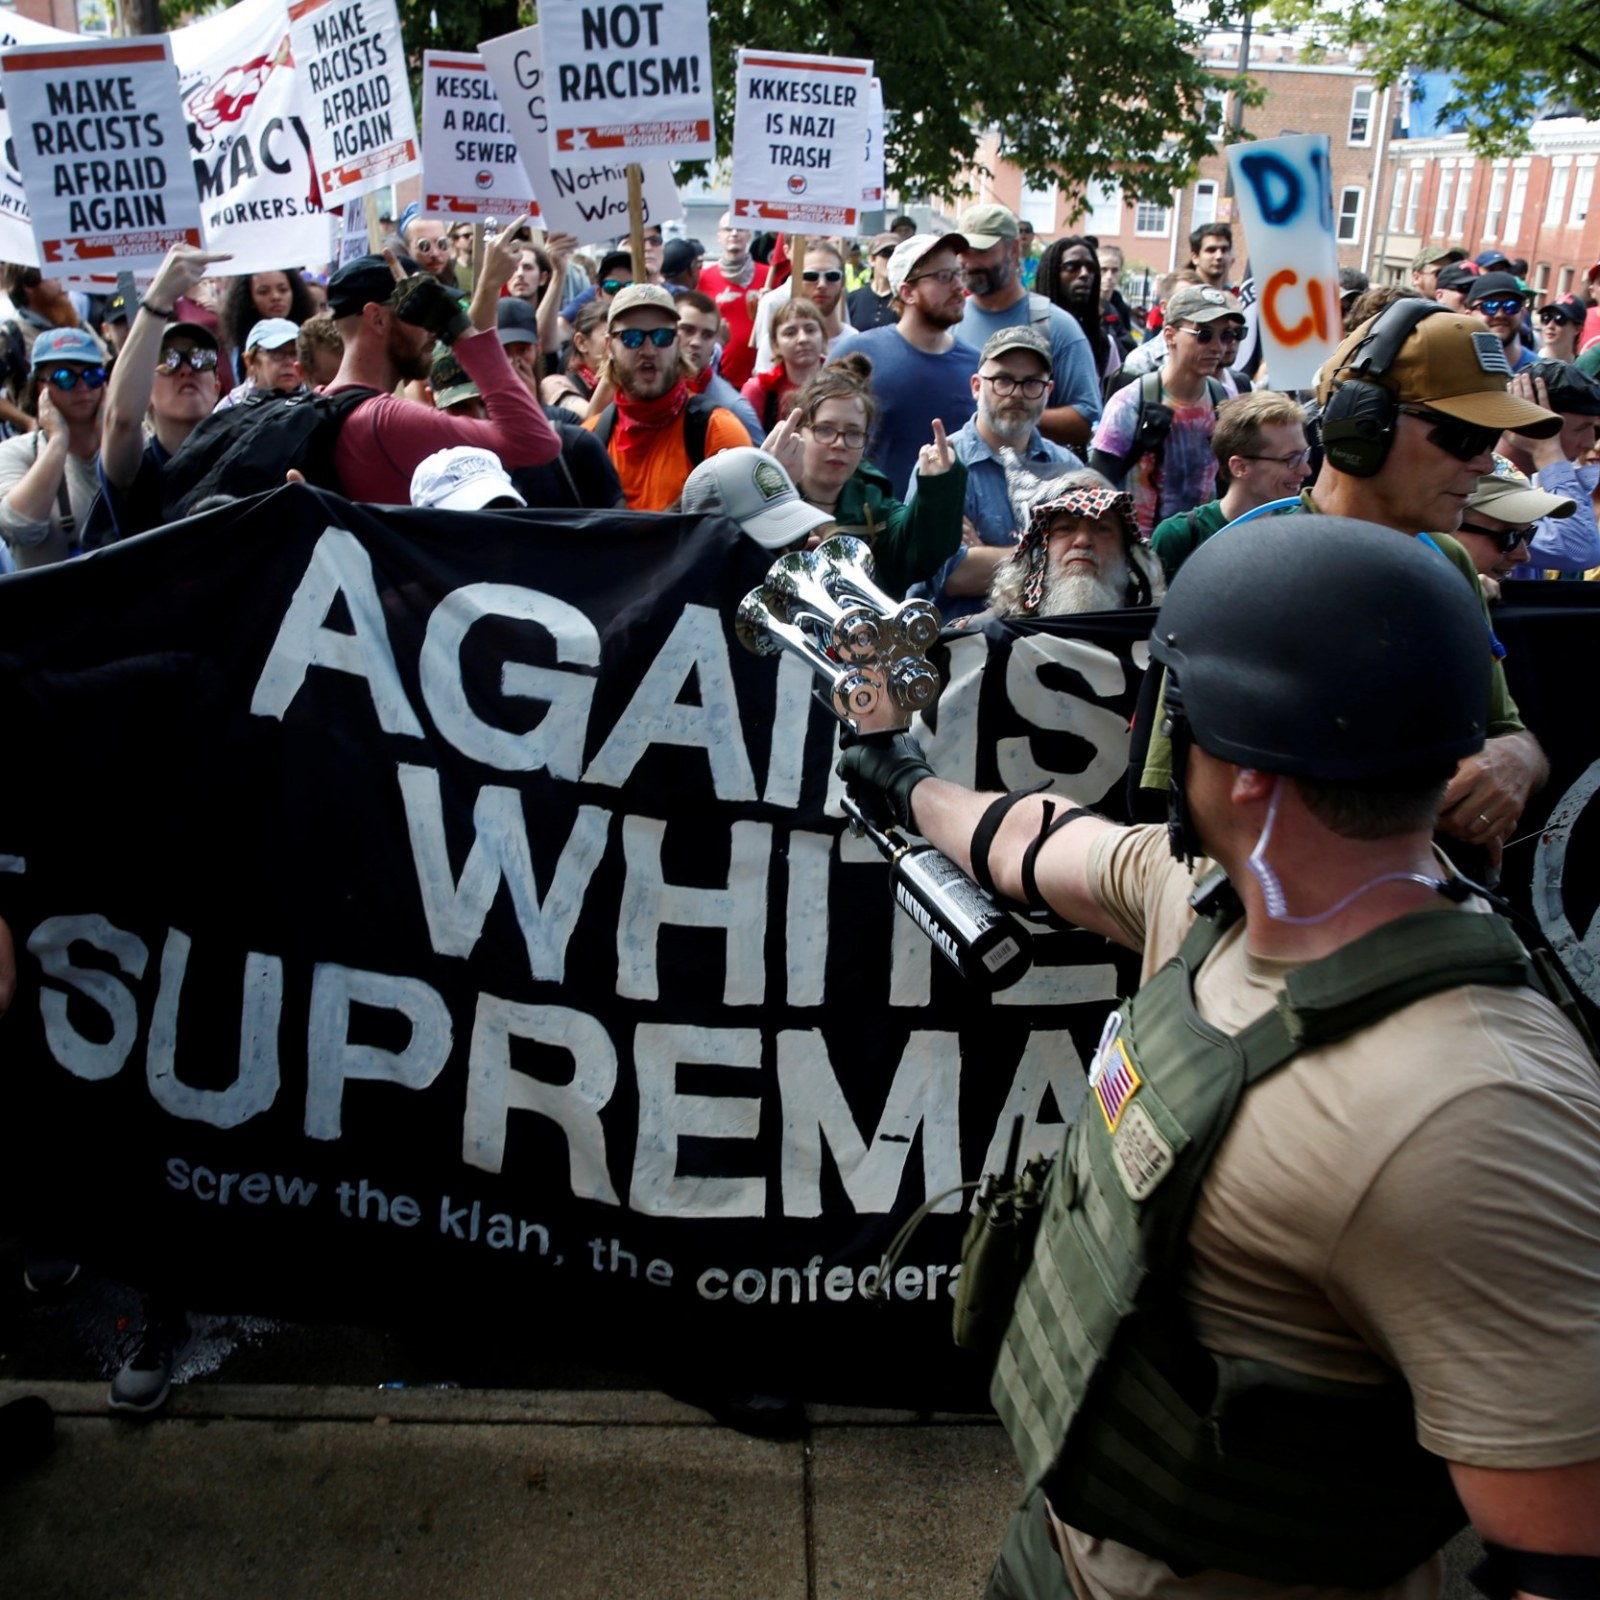 Nazis Are Not Socialists Nor Democrats Despite What Alt-Right Might Say